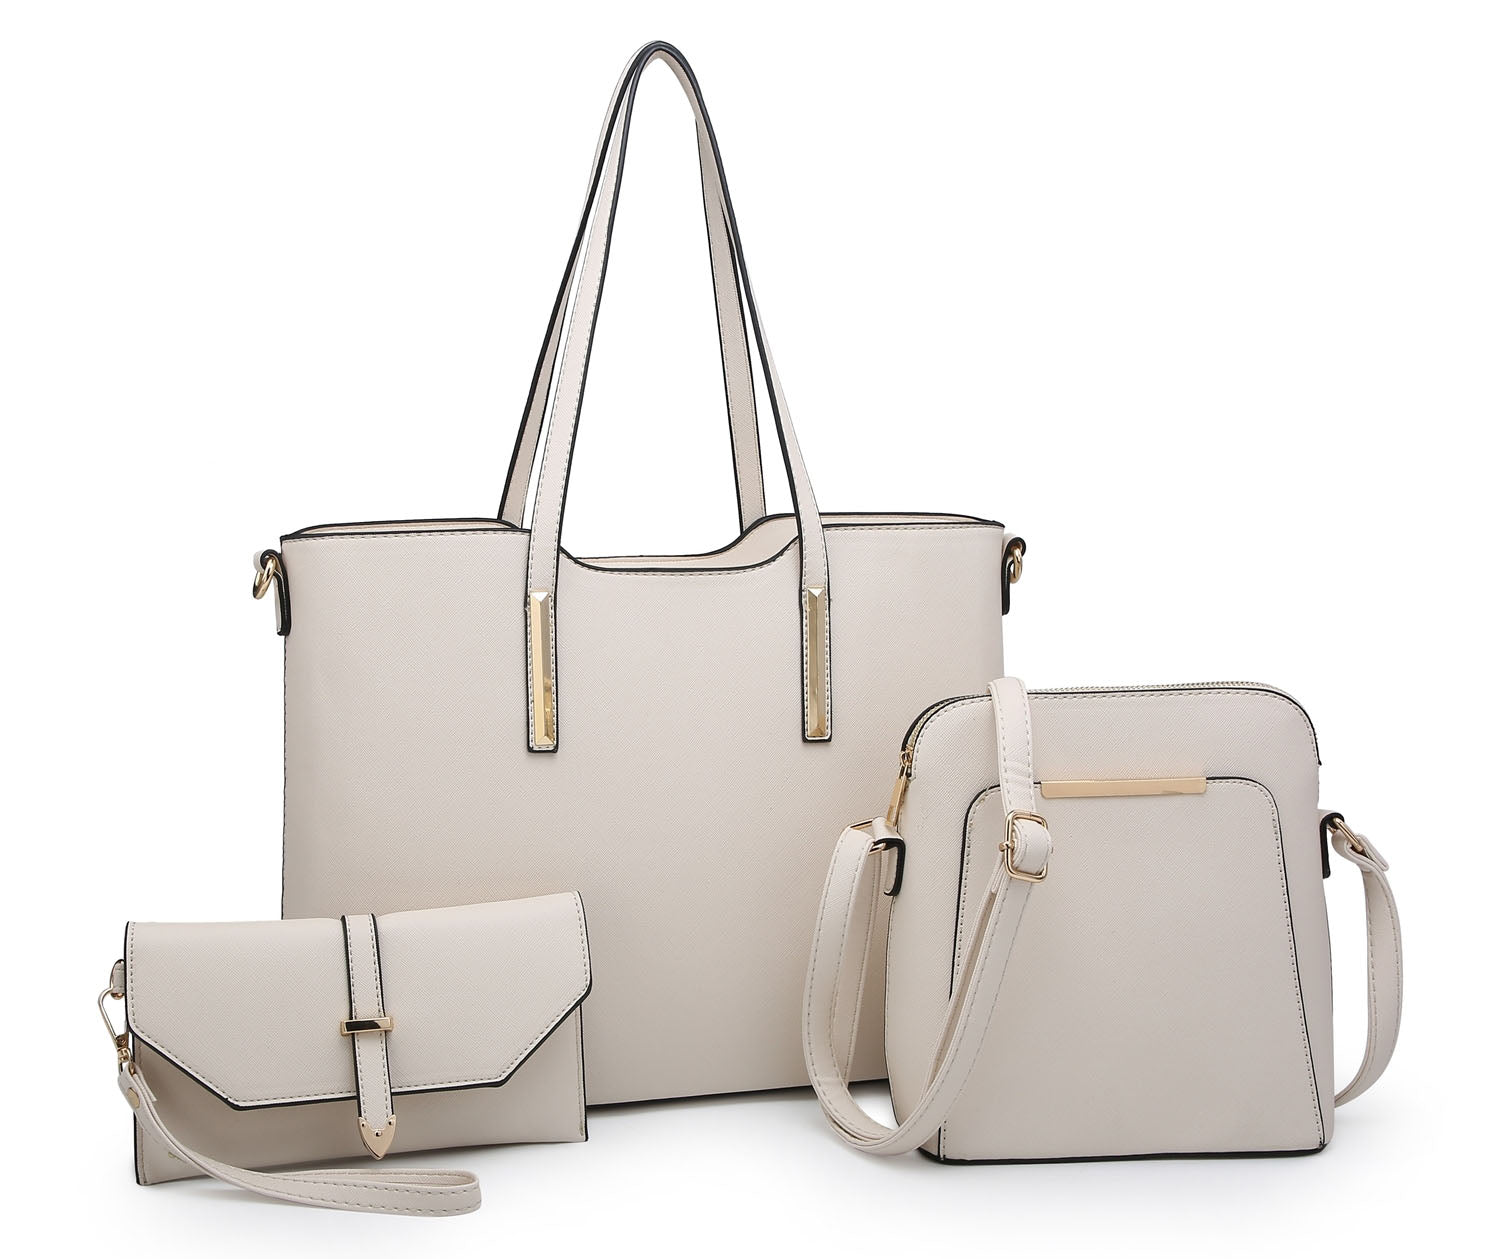 LARGE BEIGE TOTE HANDBAG SET WITH PURSE AND CROSSBODY BAG